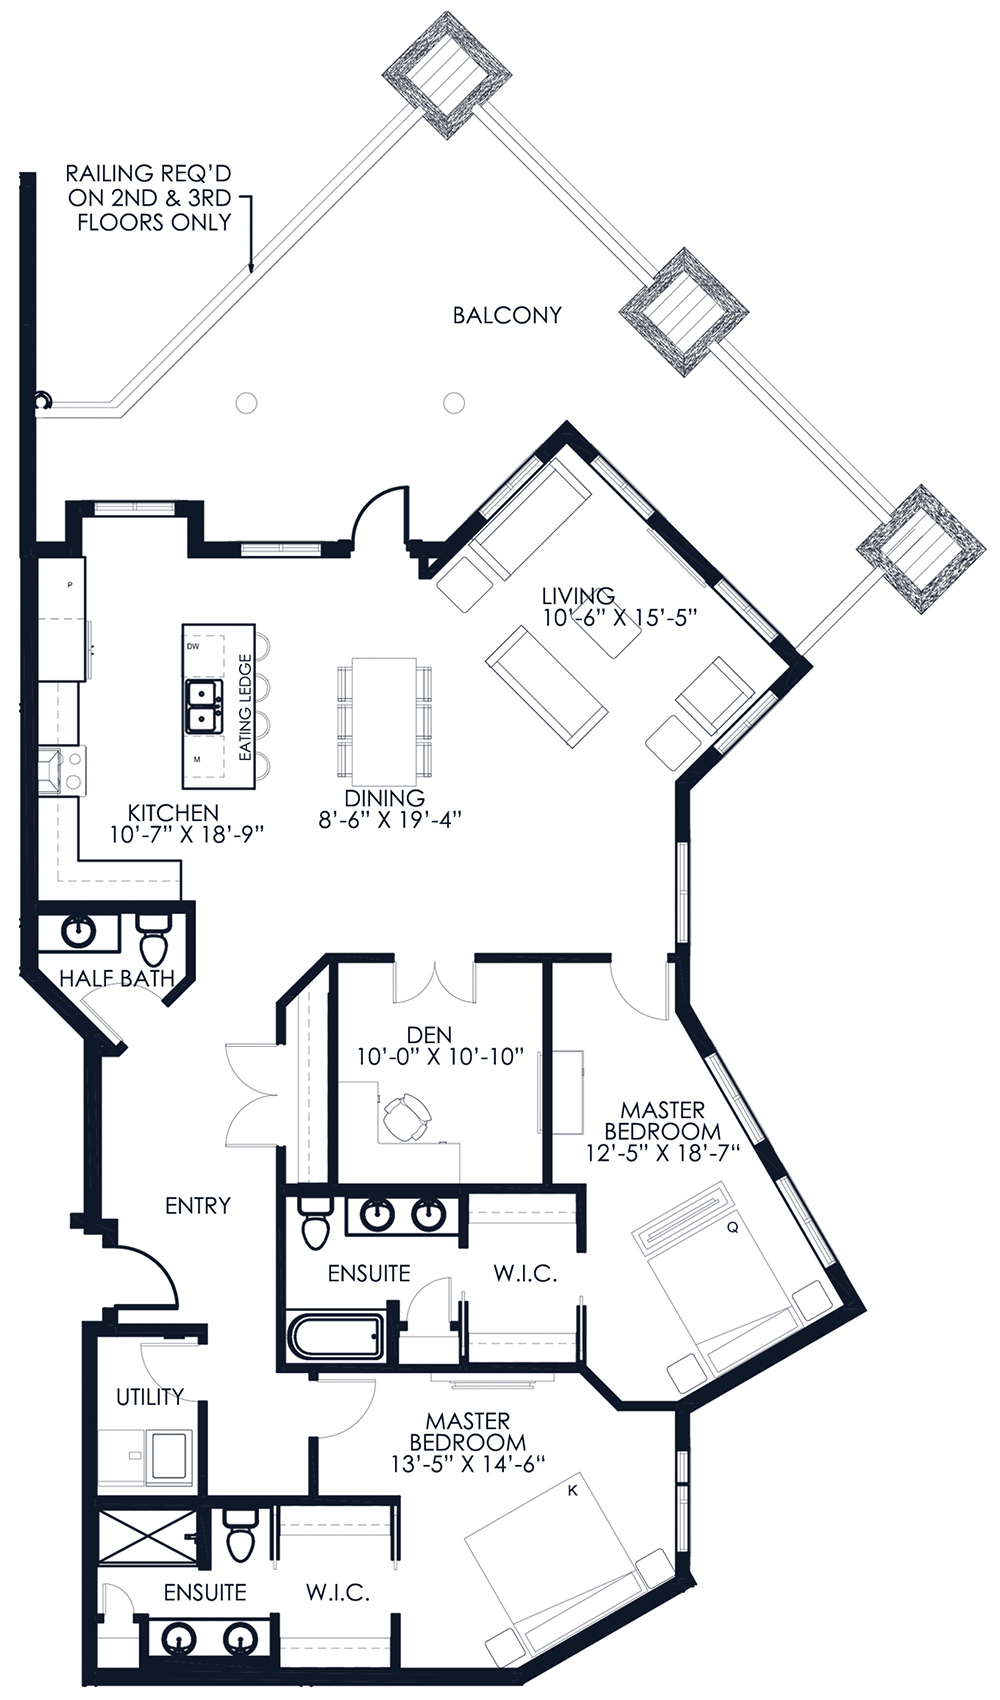 Unit A114-214-314 floor plan